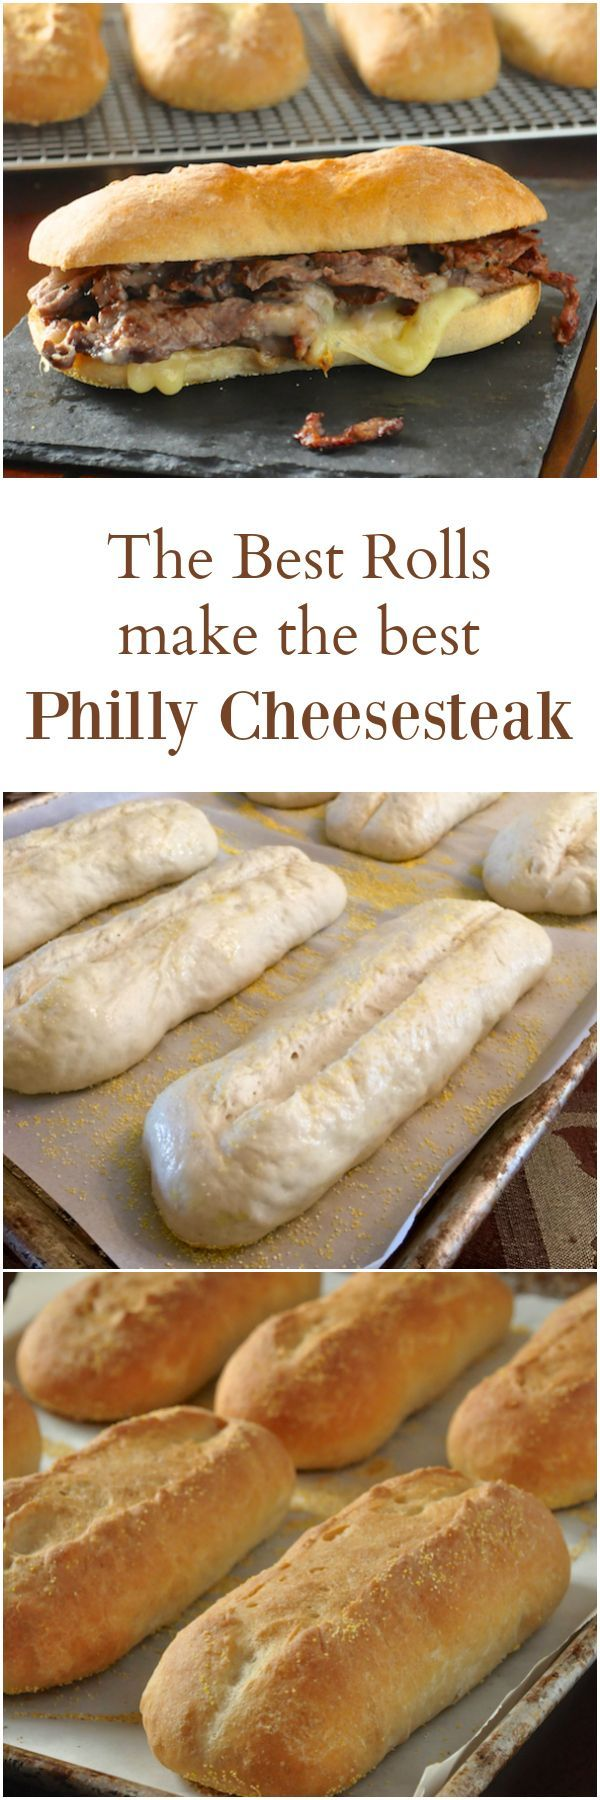 Homemade Philly Cheesesteak, a near perfect version of this famous sandwich that you can make at home, on the closest thing to an authentic cheesesteak roll I've ever tried.